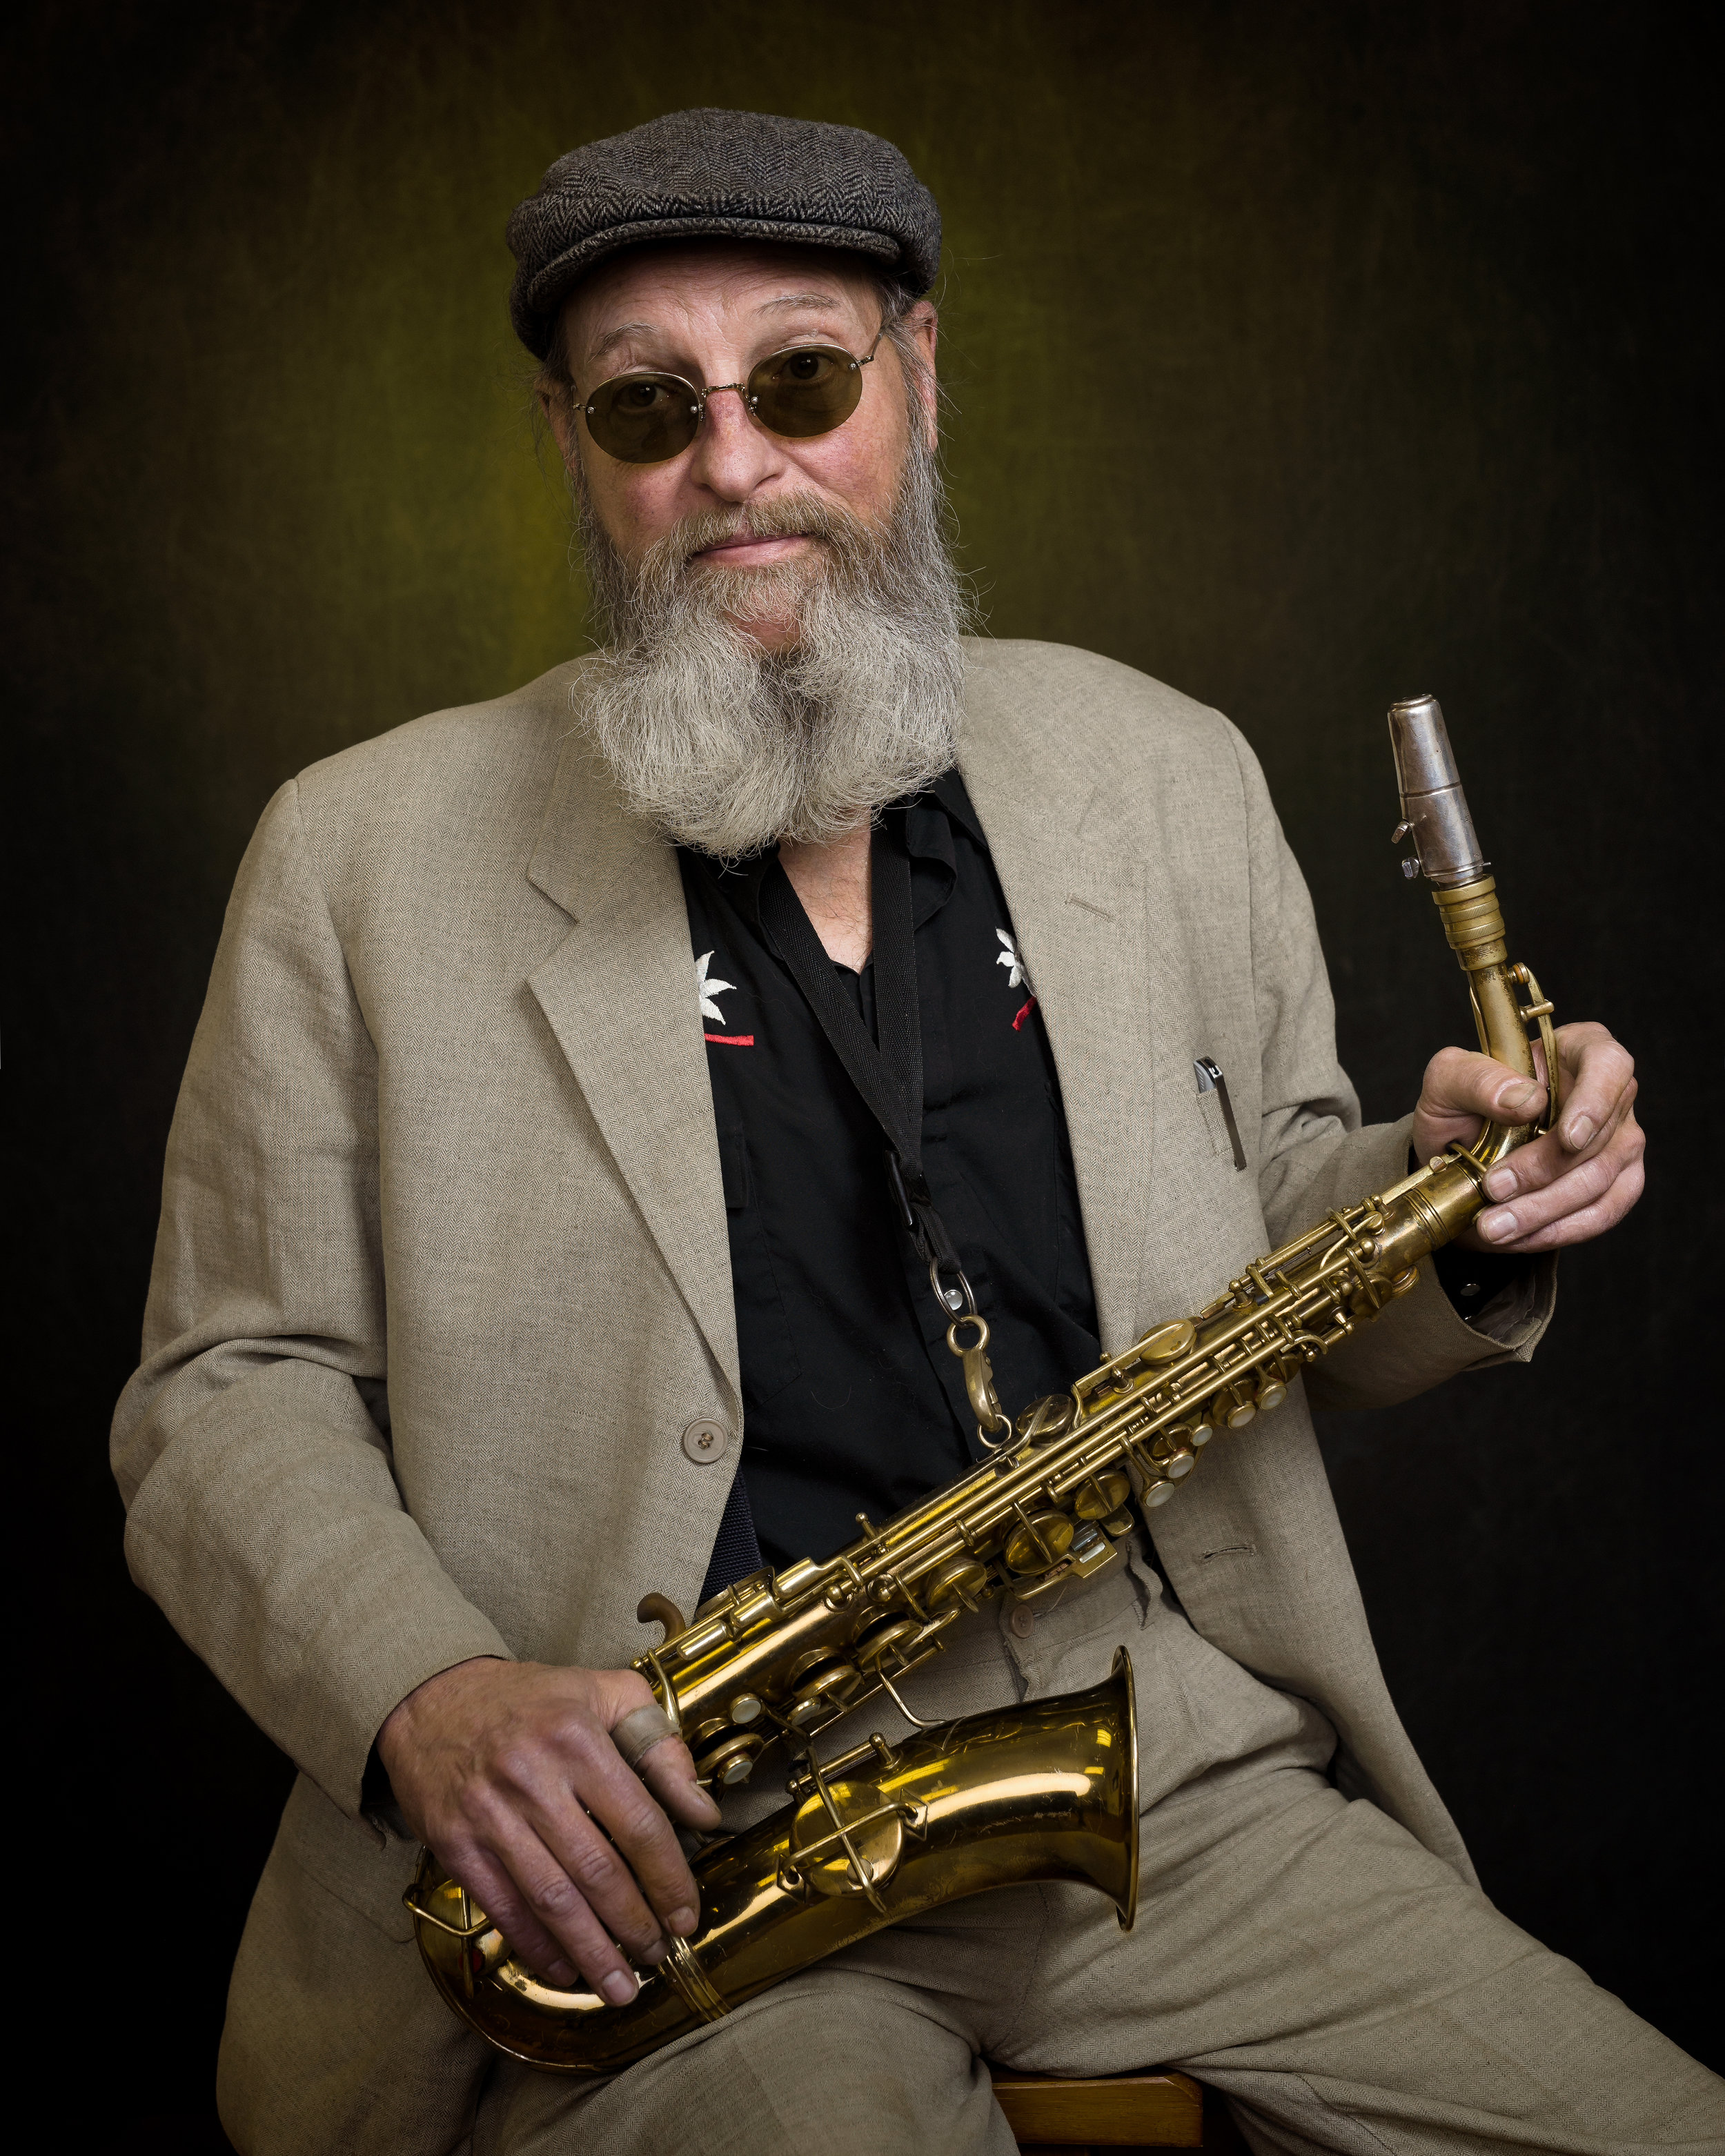 Mike Urban, business owner and saxophonist